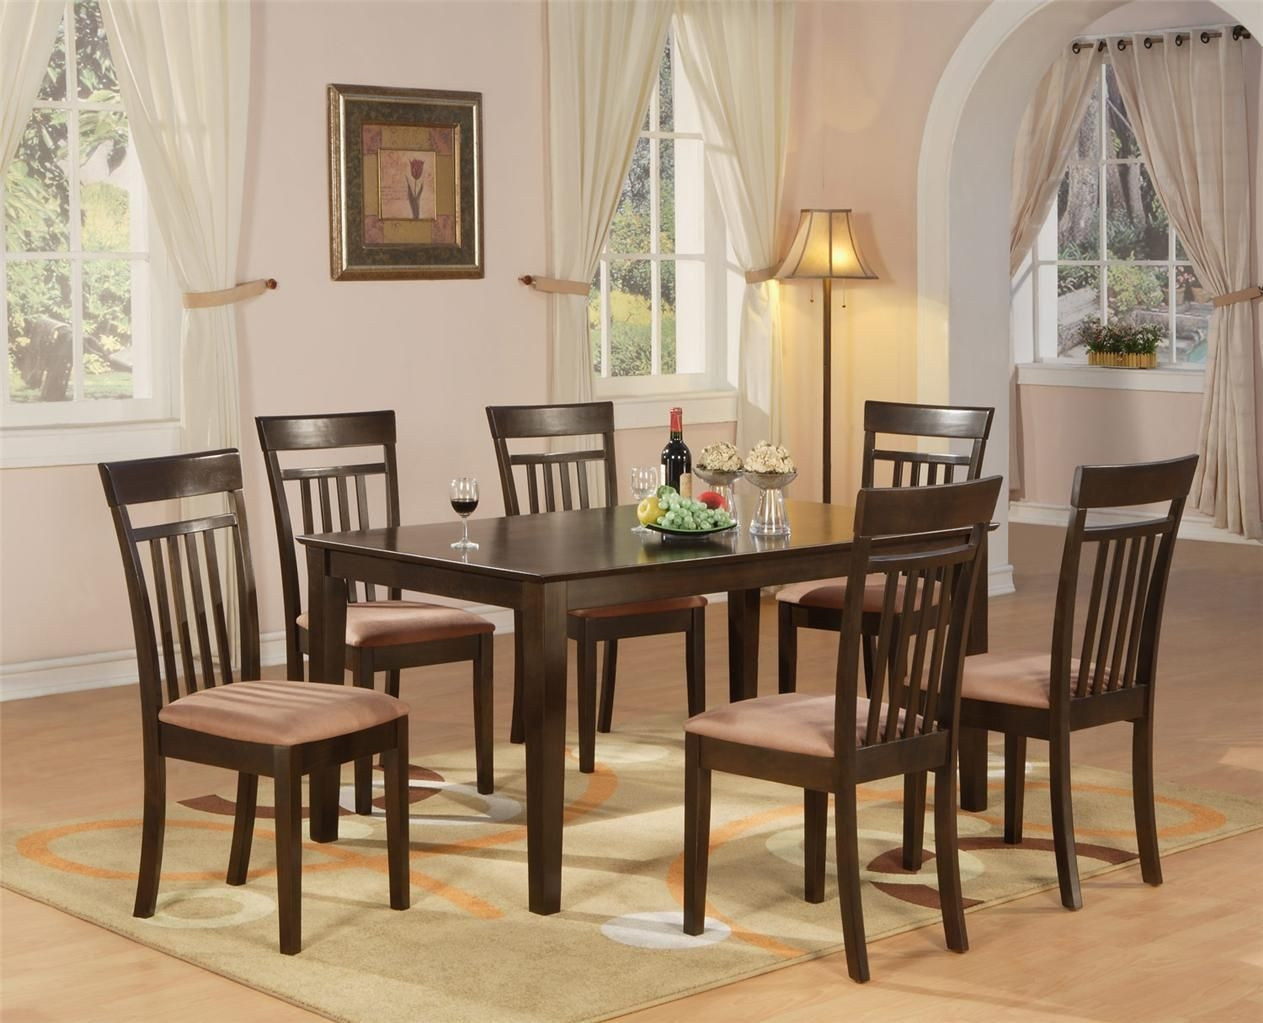 7 Pc Dining Room Dinette Kitchen Set Table And 6 Chairs  Ebay